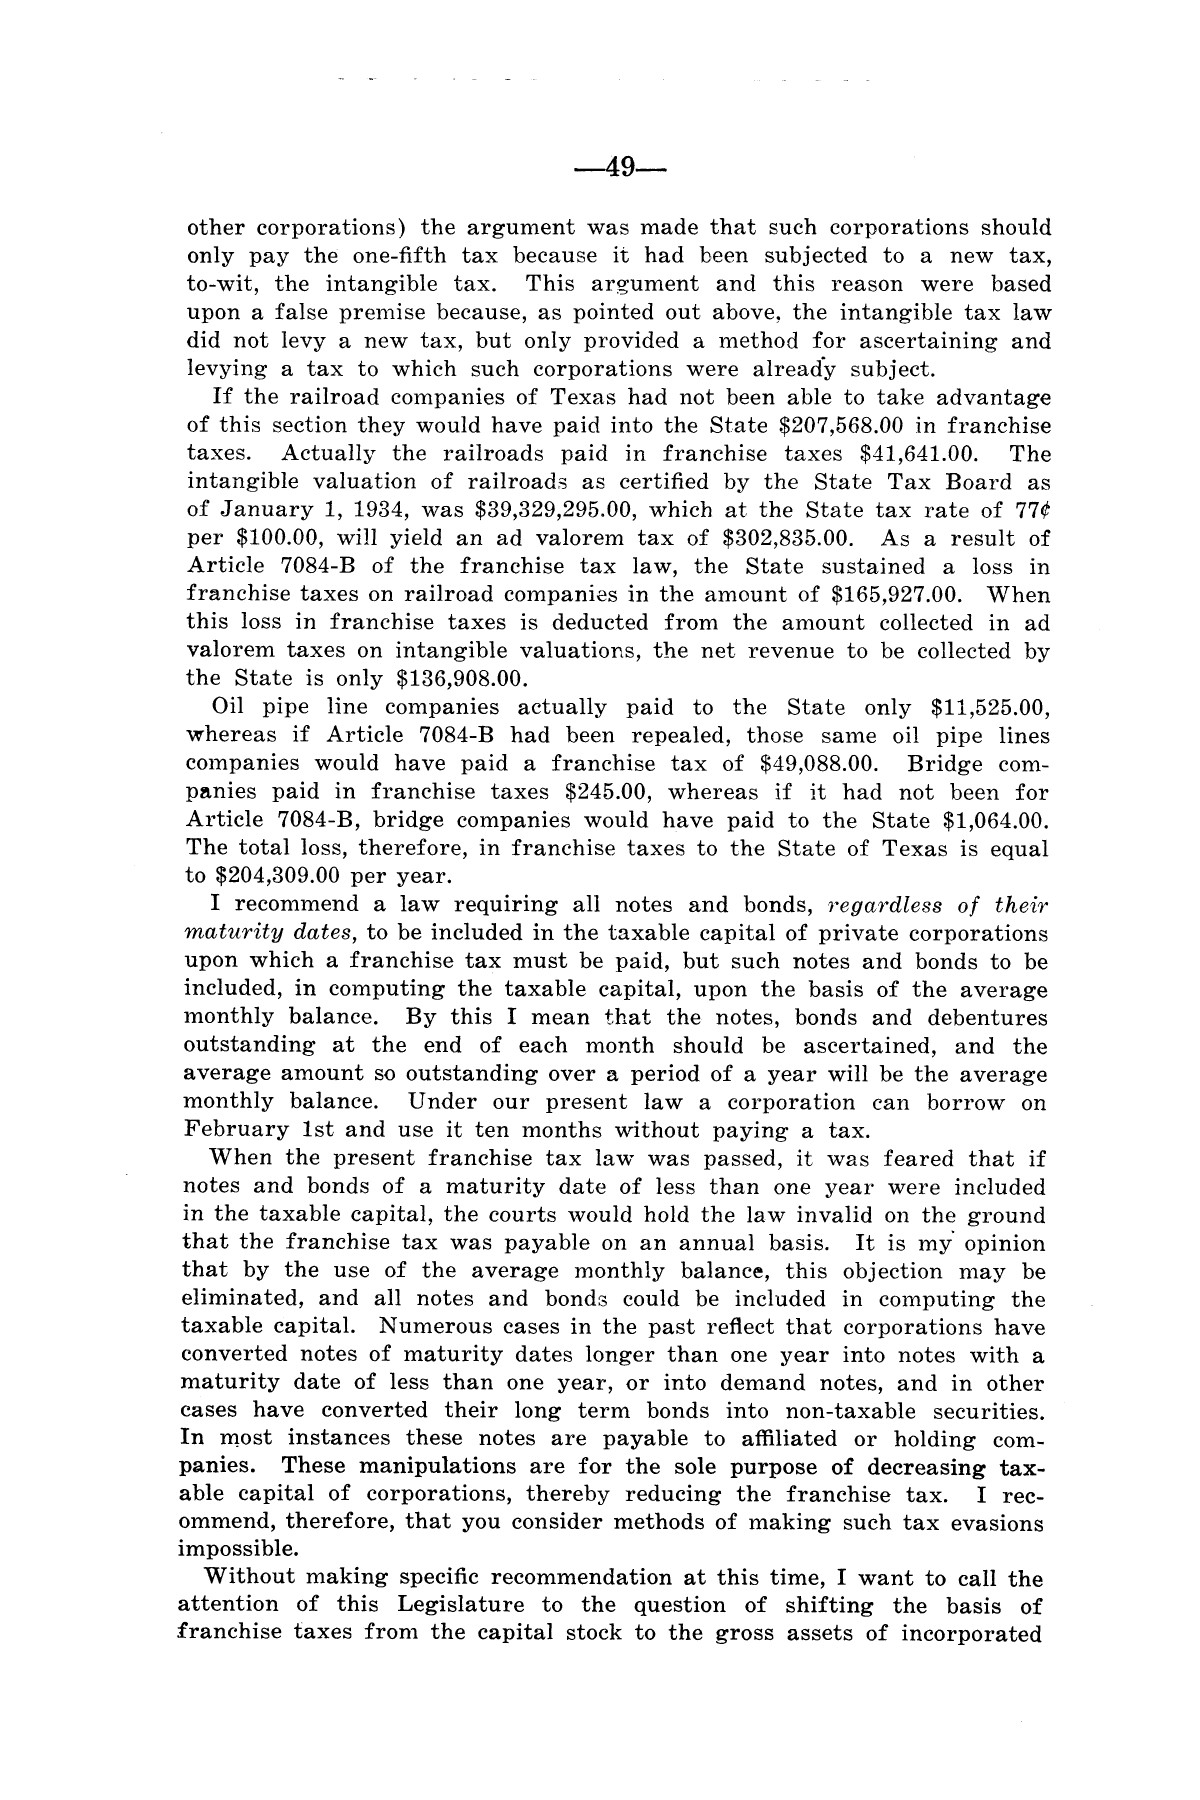 Legislative Messages of Hon. James V. Allred, Governor of Texas 1935-1939                                                                                                      [Sequence #]: 48 of 263